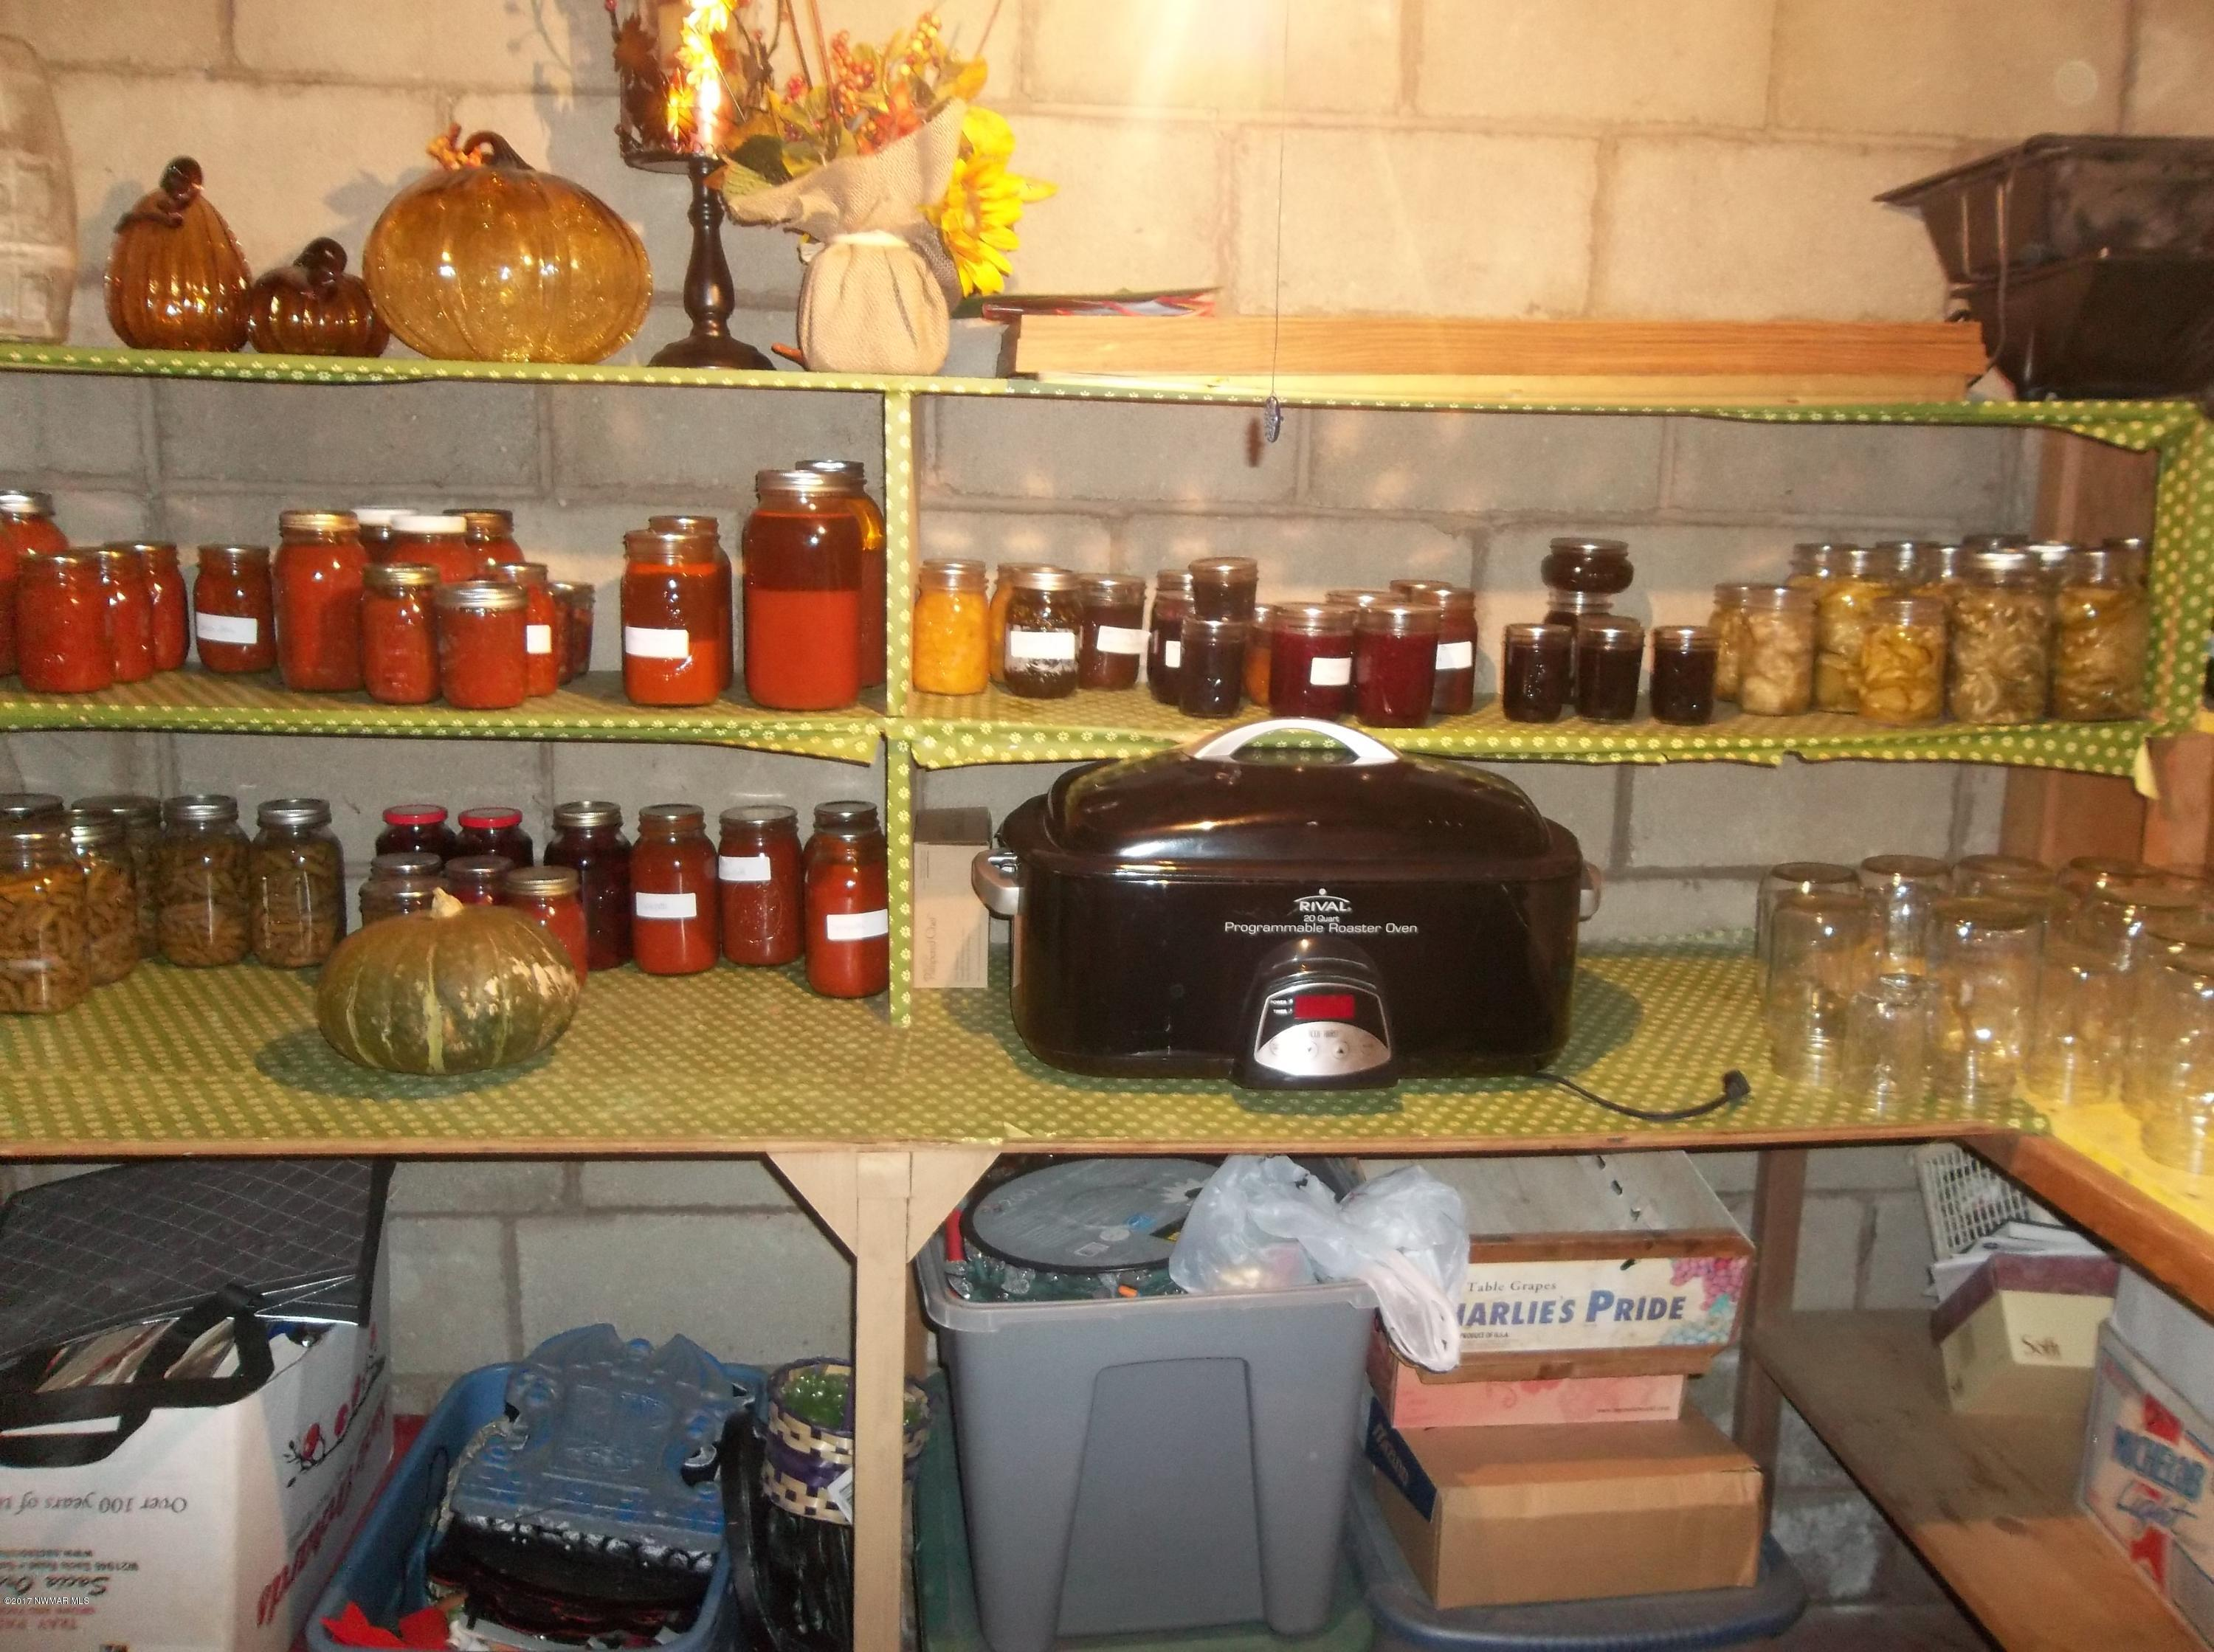 Canning room in the basement